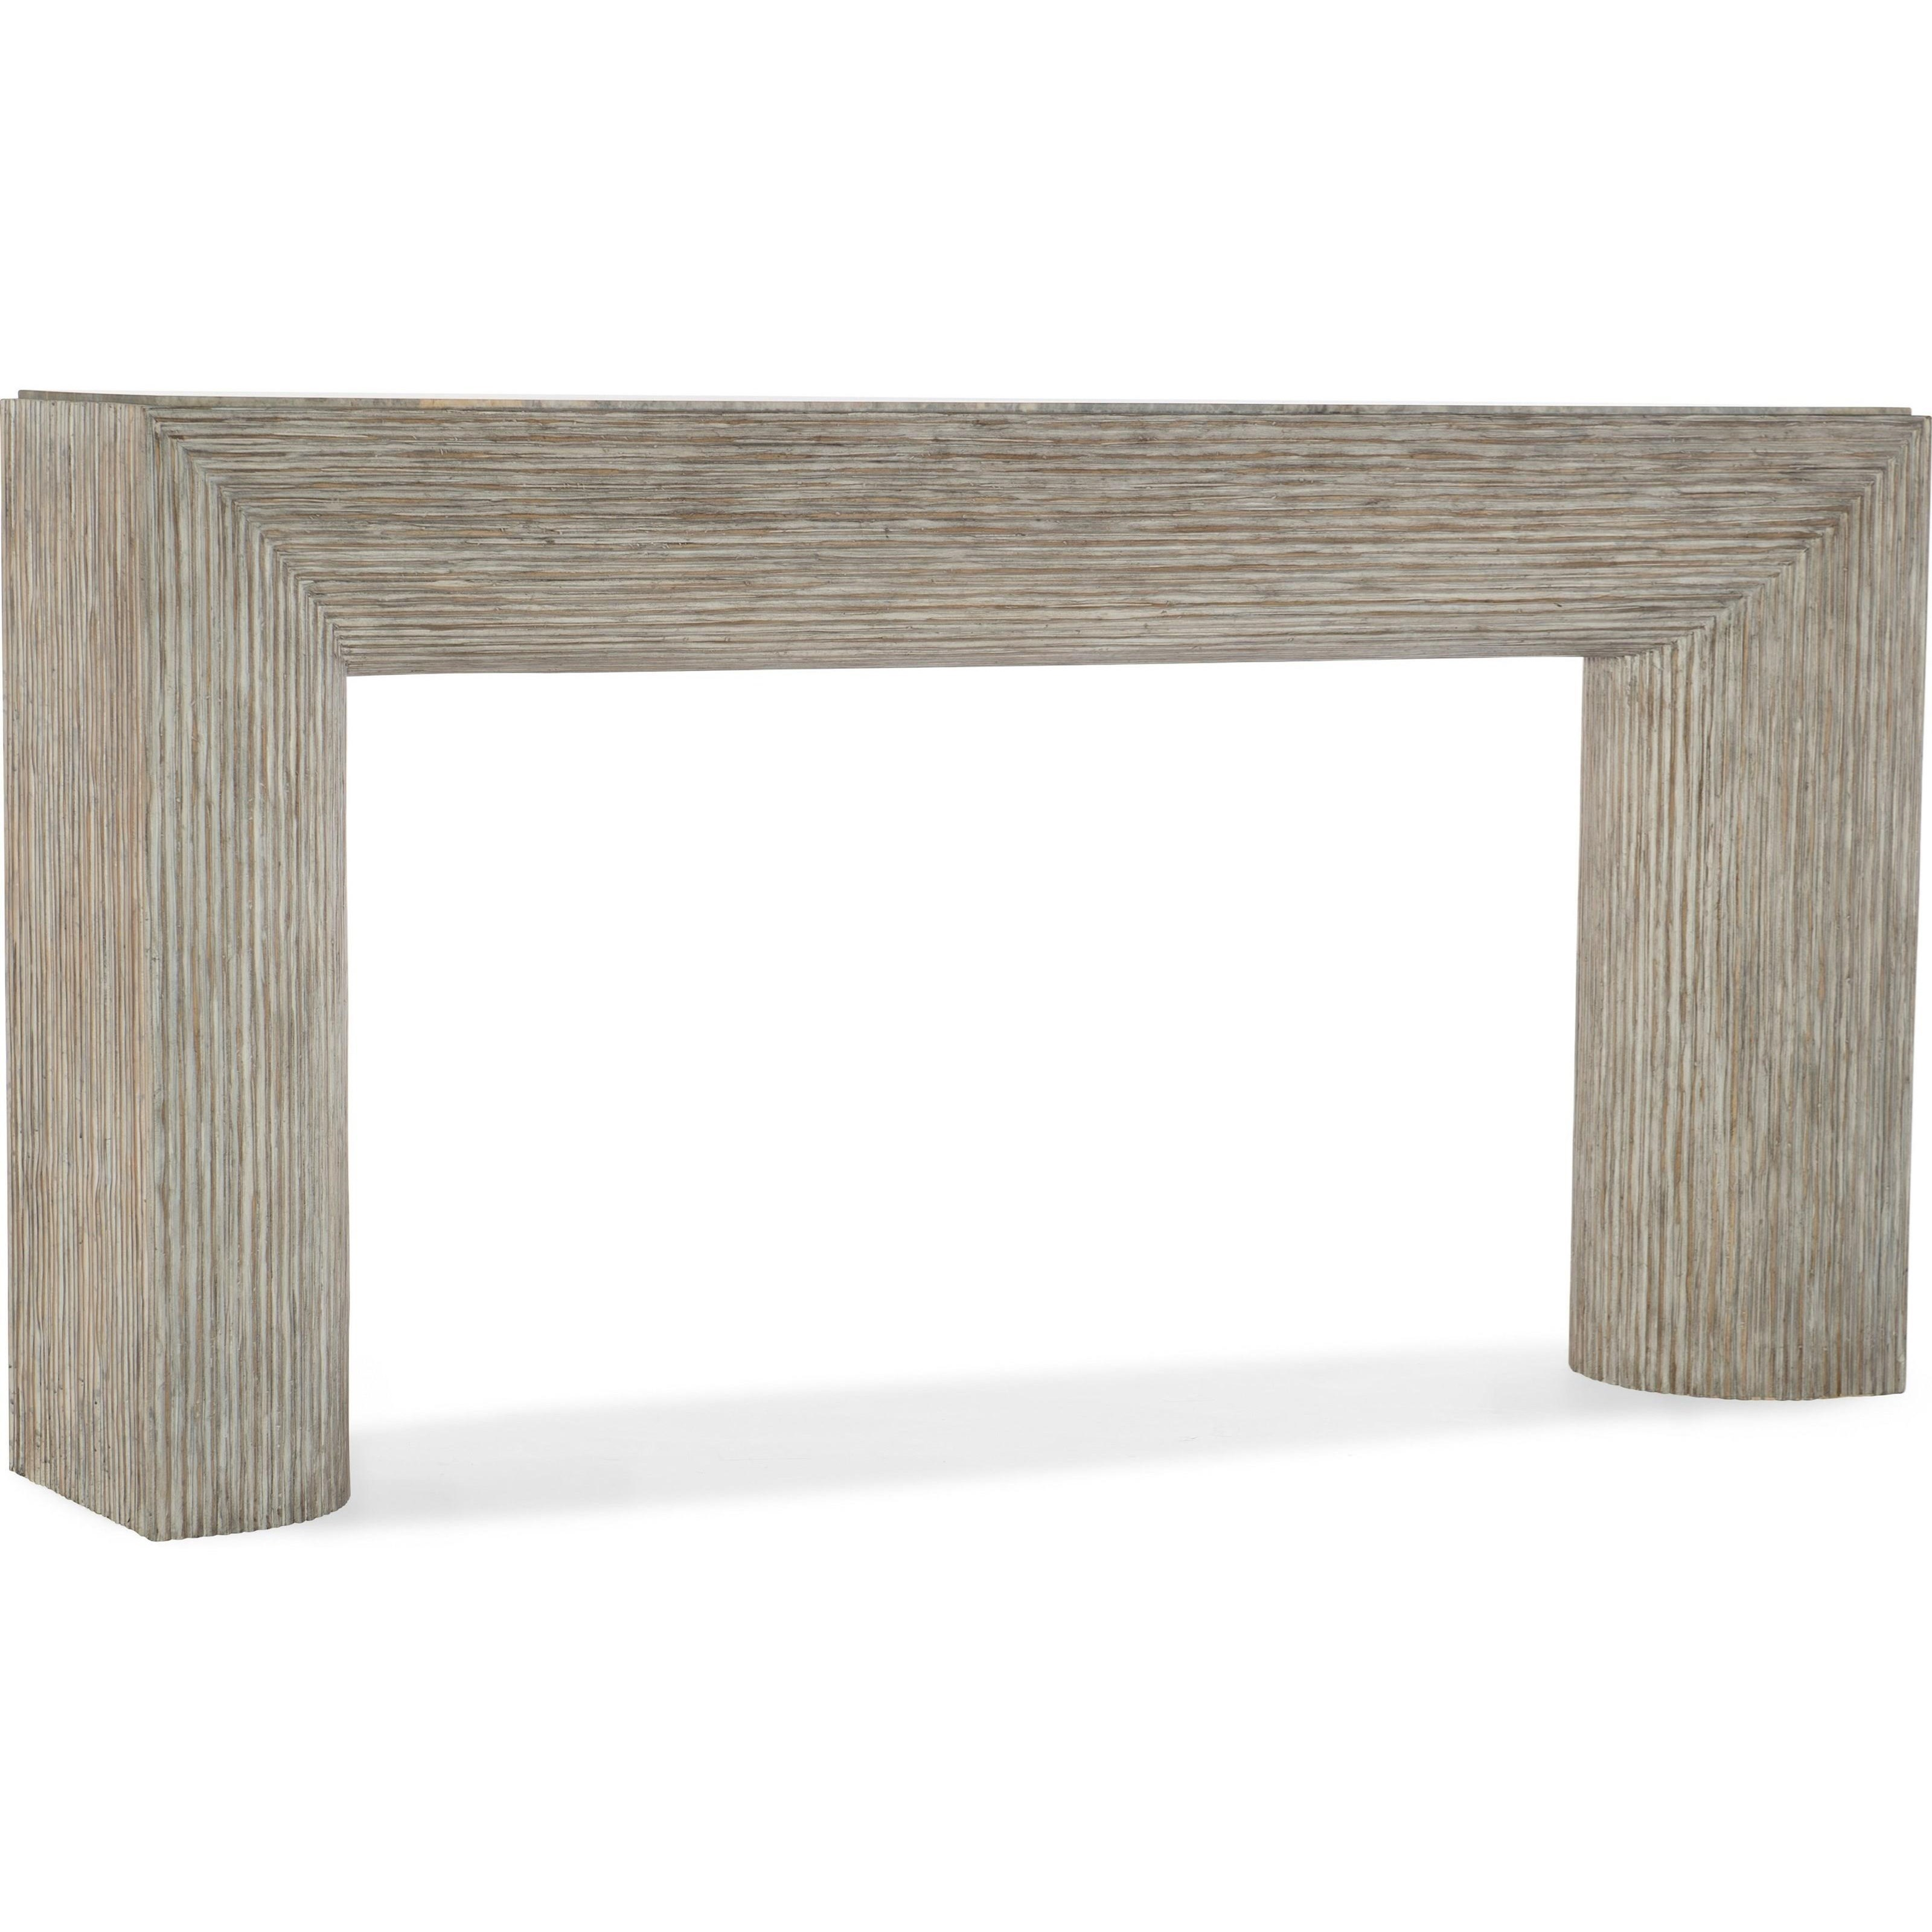 American Life-Amani Sofa Table by Hooker Furniture at Baer's Furniture